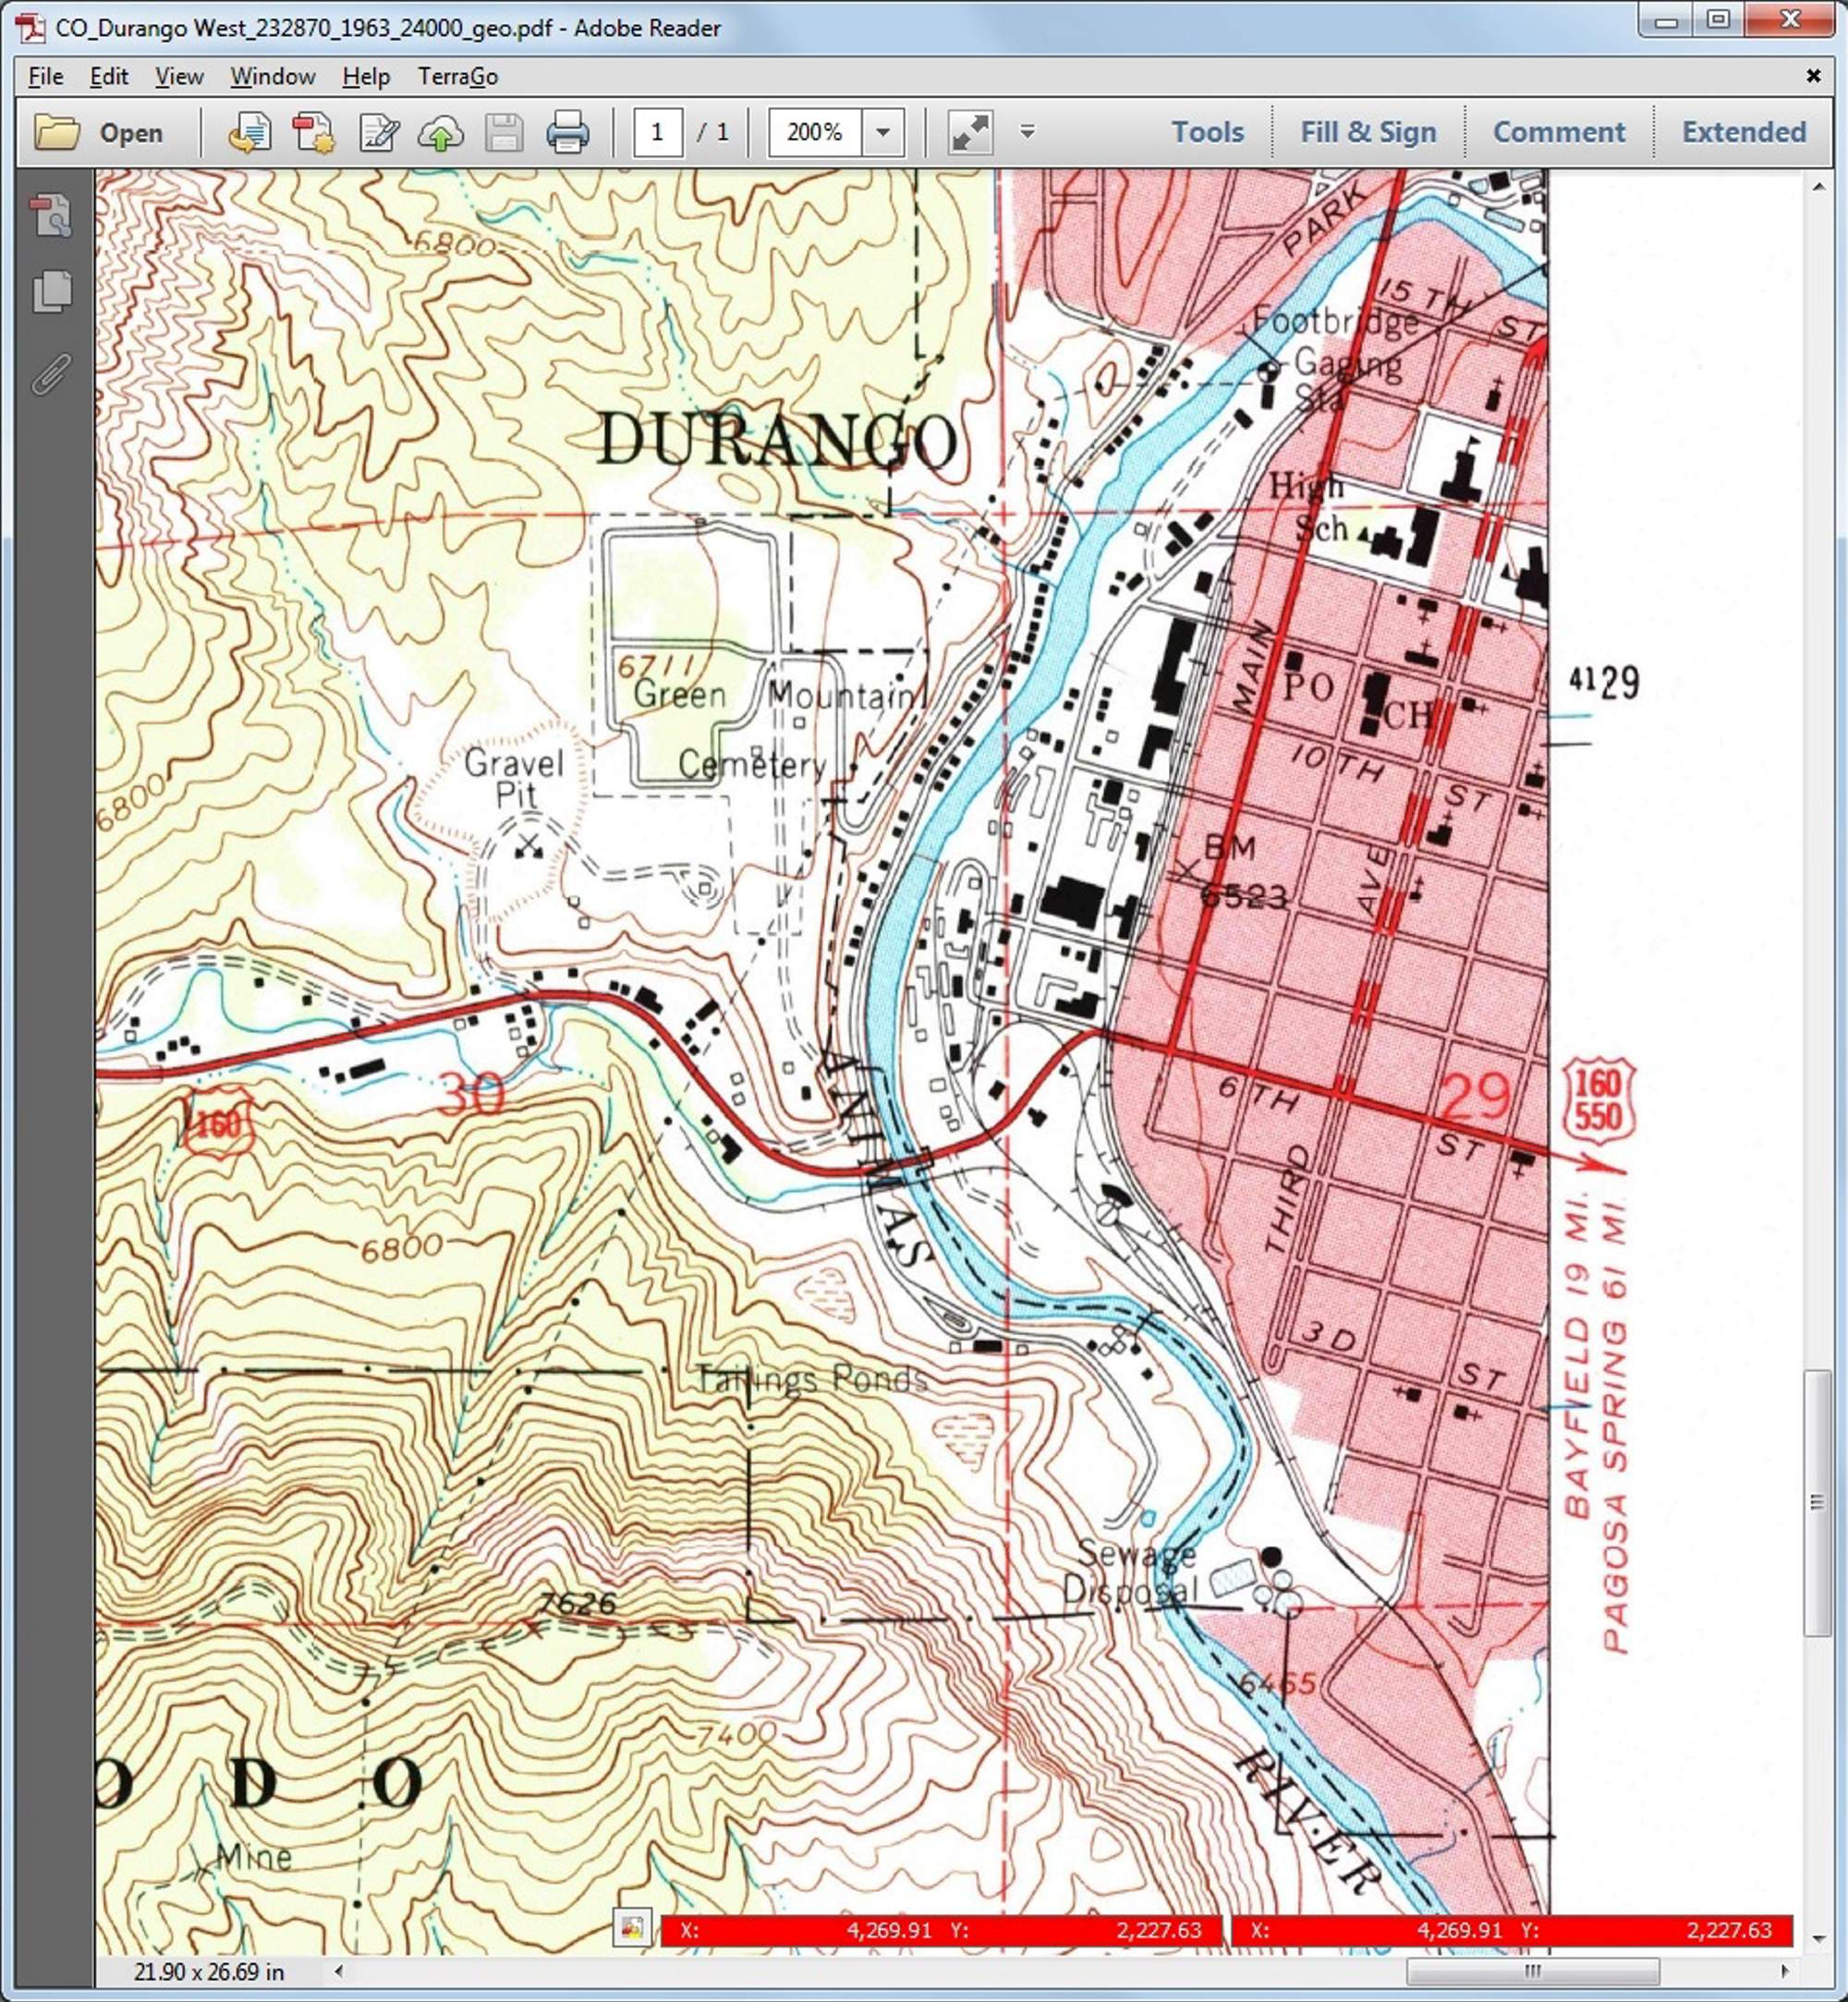 Action Line Mercy cleaned daily Durango topo maps untouched since 1963